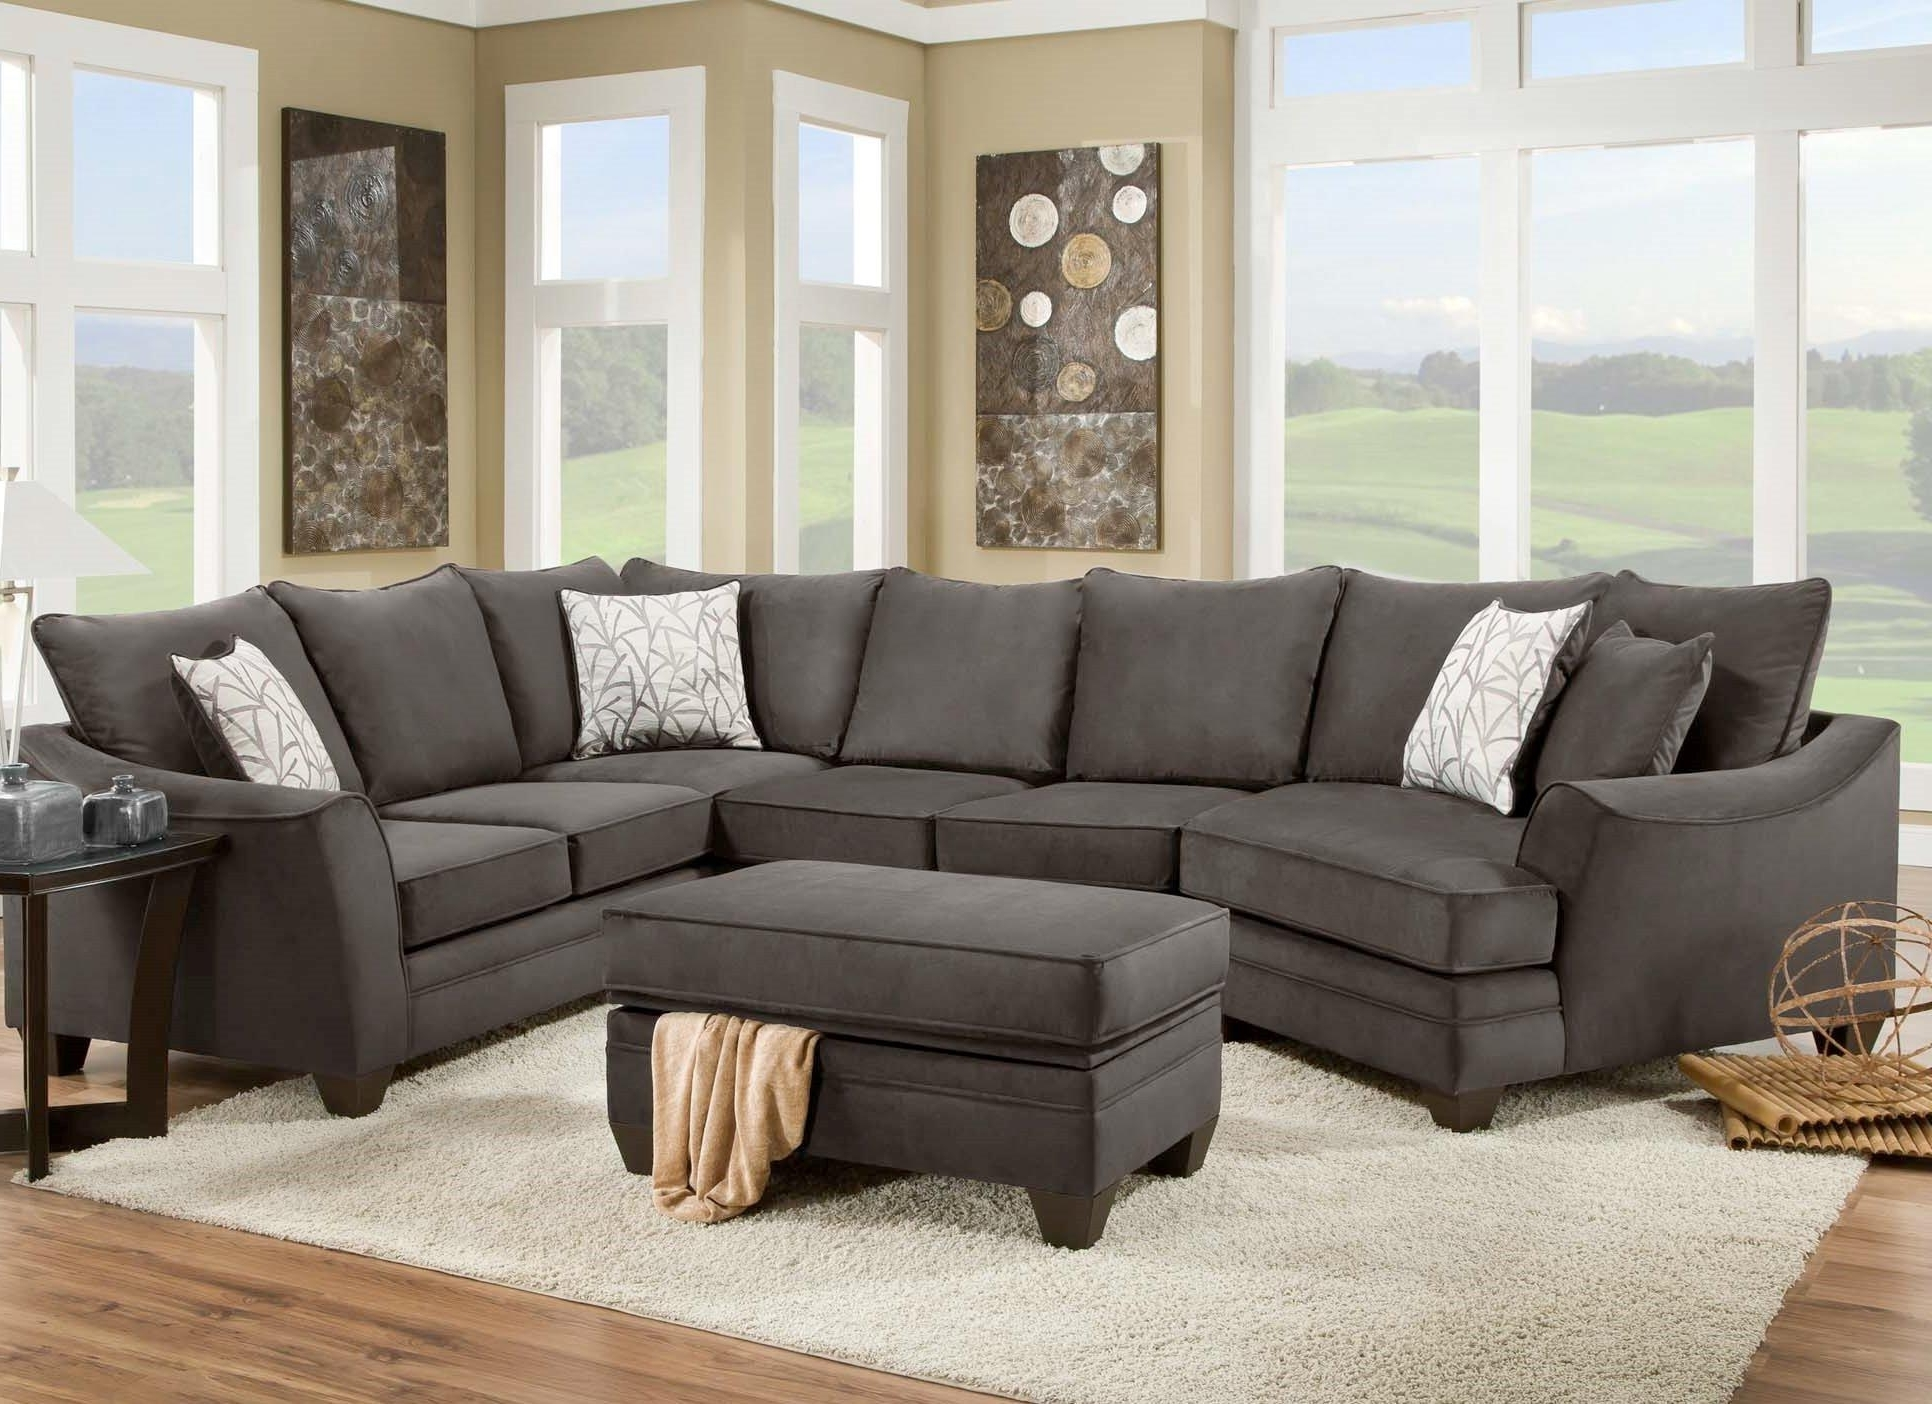 Most Recently Released Cuddler Sectional Sofas Within American Furniture 3810 Sectional Sofa That Seats 5 With Left Side (View 14 of 20)